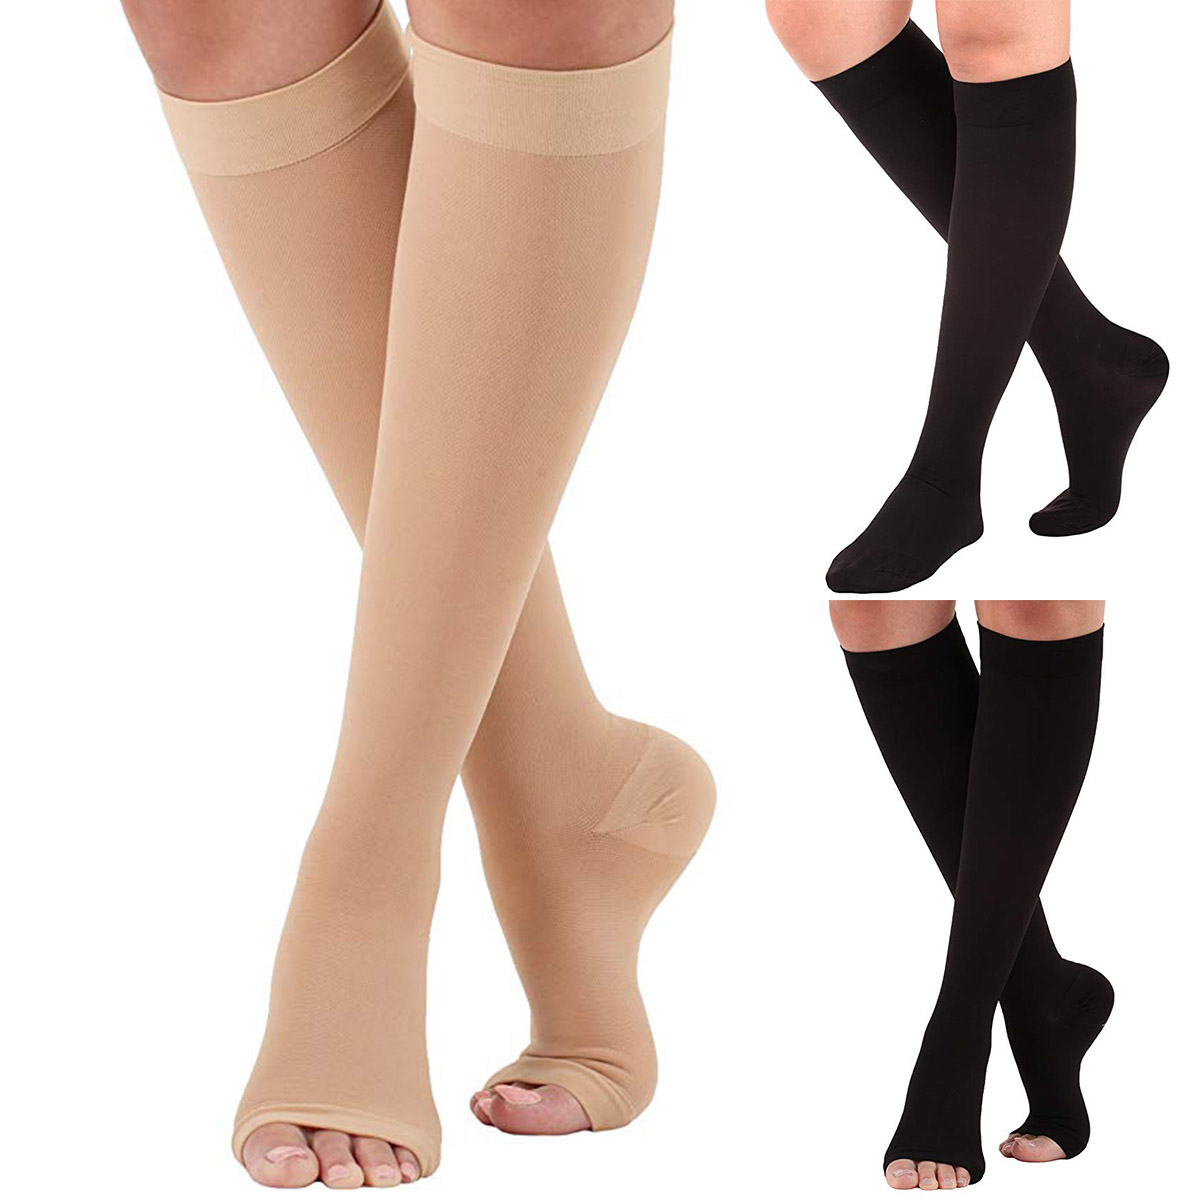 a5f0fef08e4 Details about 23-32mmHg Medical Compression Socks Knee High Support  Stockings Open Closed Toe